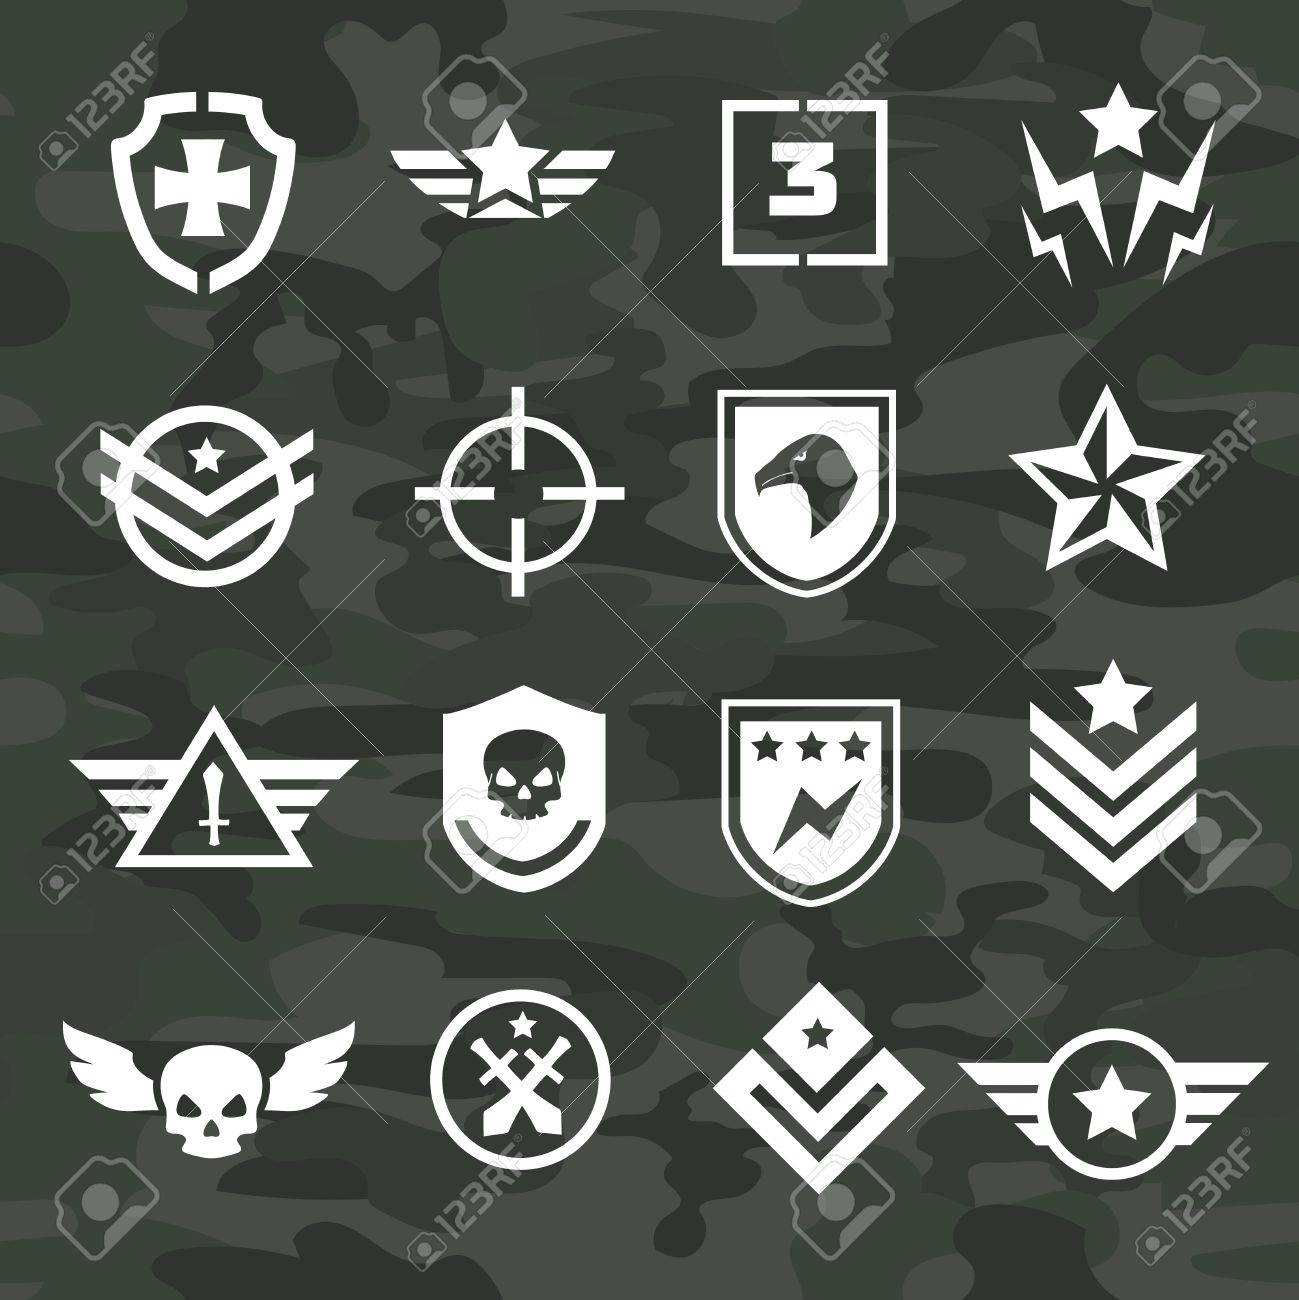 Military symbol icons and logos special forces royalty free military symbol icons and logos special forces stock vector 36321401 buycottarizona